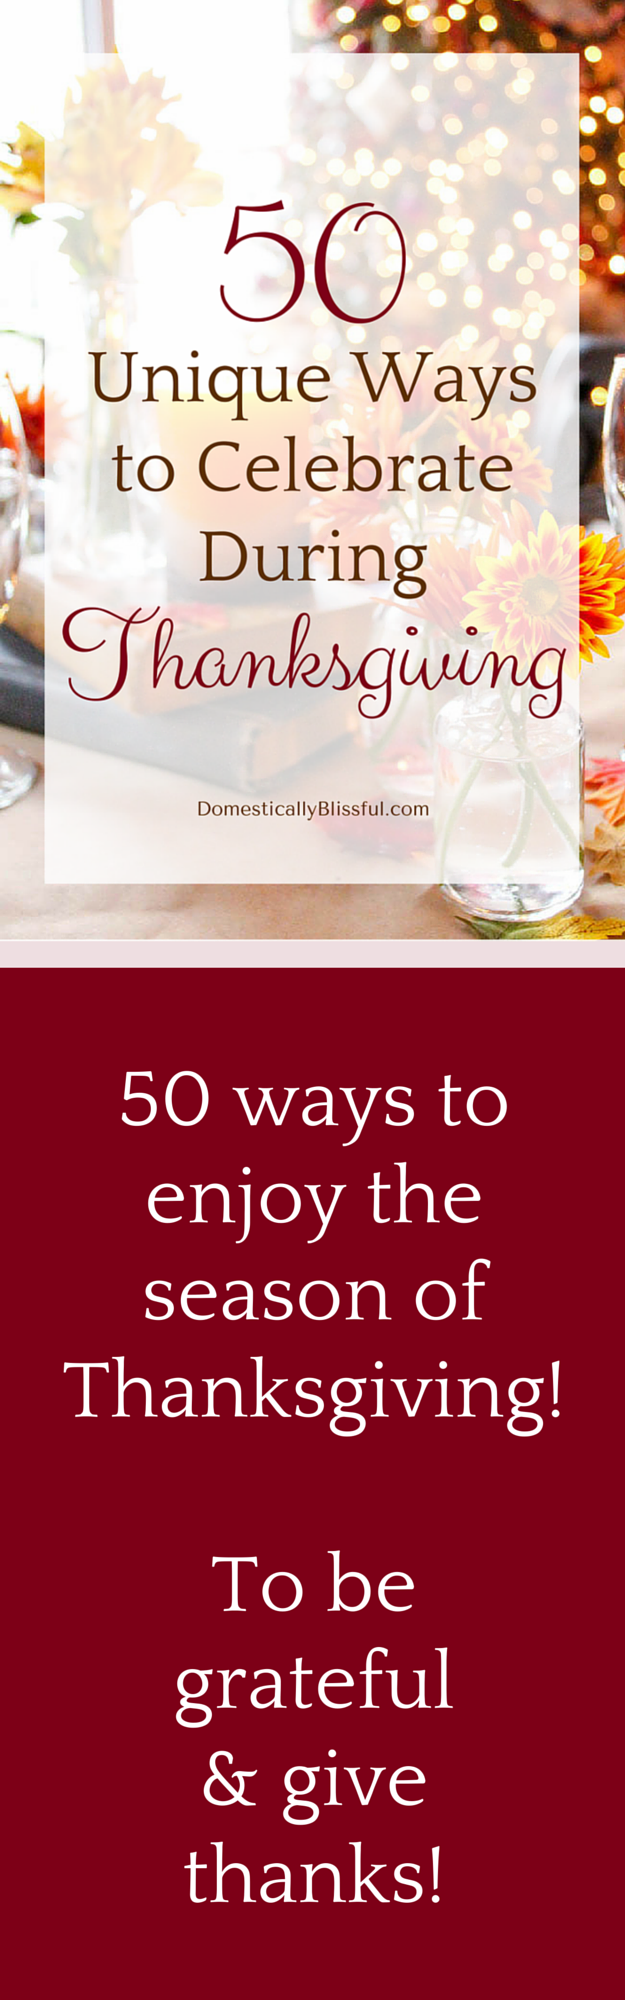 50 unique ways to celebrate & enjoy the season of Thanksgiving